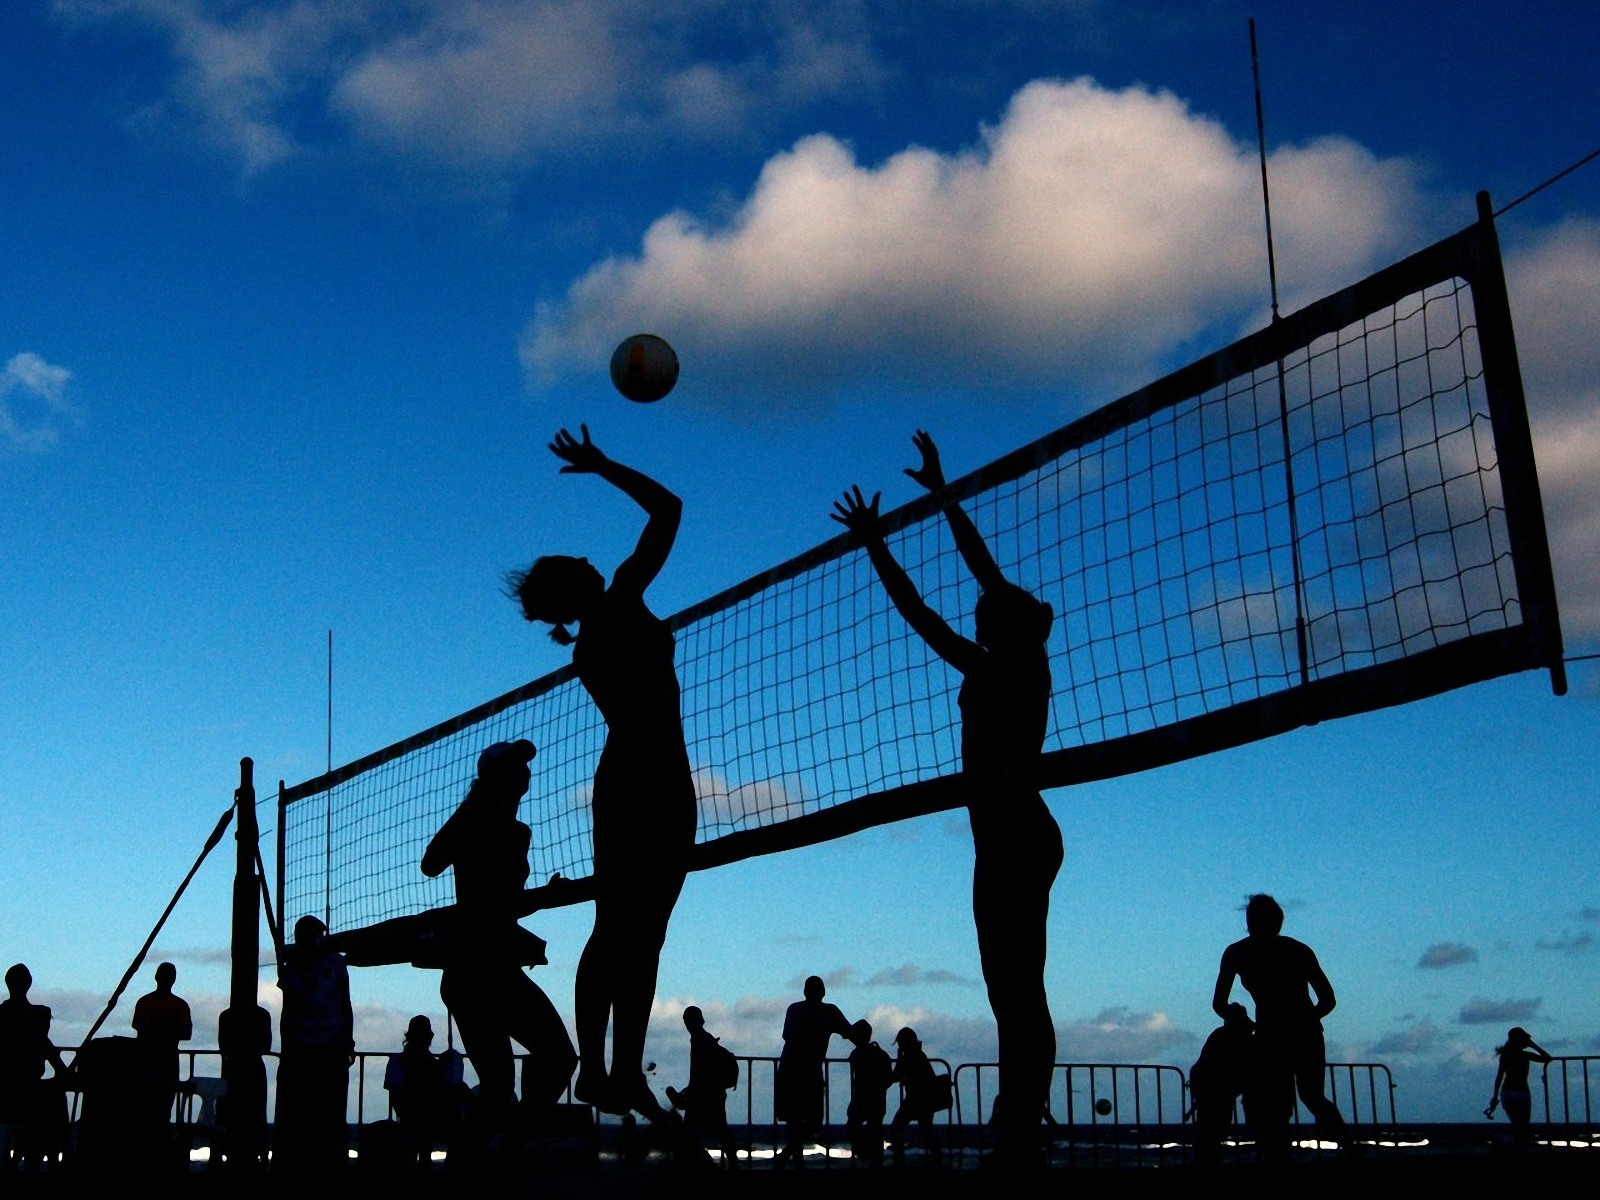 Night WallpapersBeach Volleyball Wallpapers Pictures Download 1600x1200